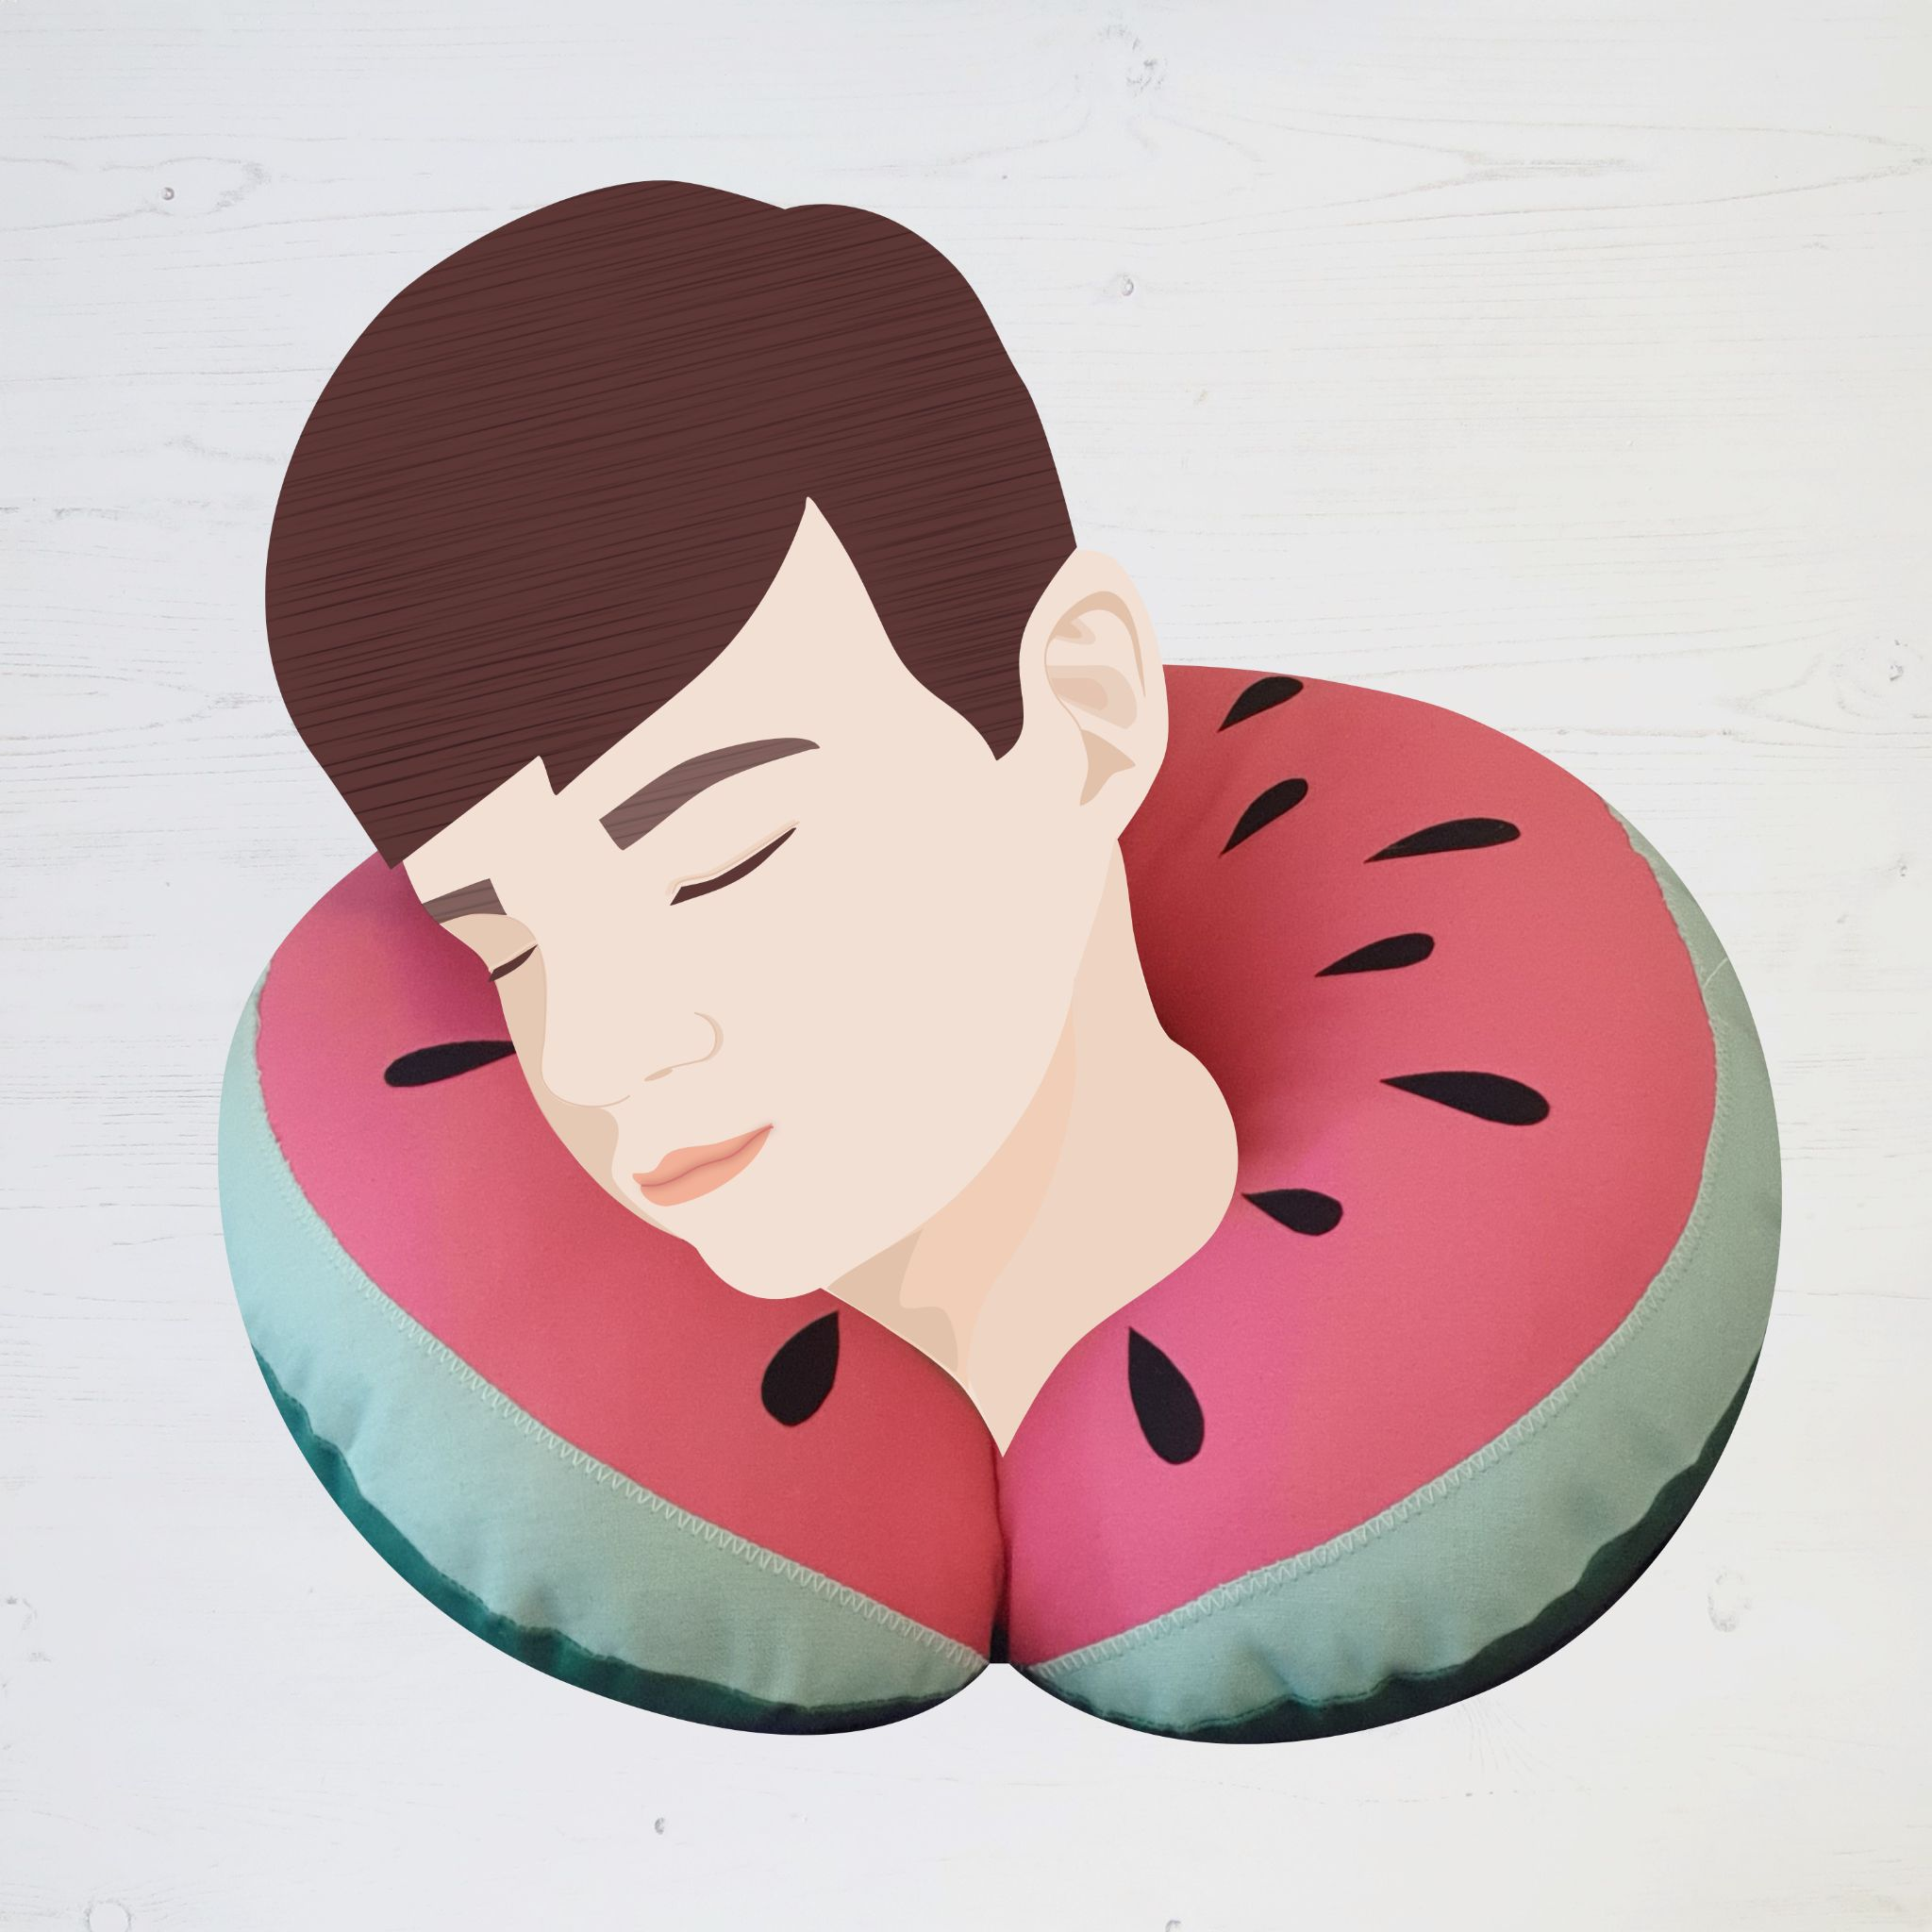 The Watermelon Neck Pillow sewing kit, by Stitch Club